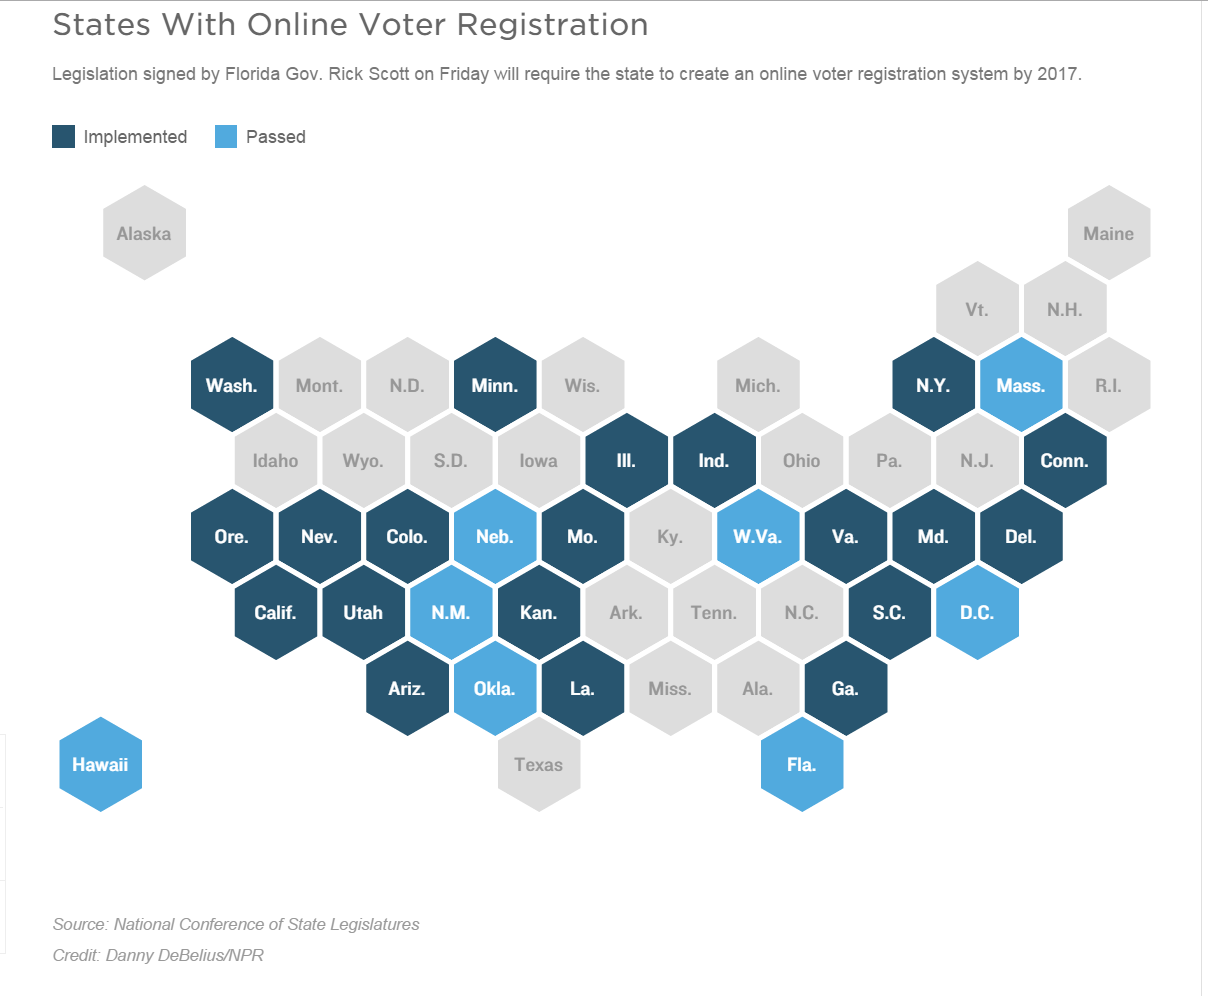 onlineVoterRegistrationMap.png